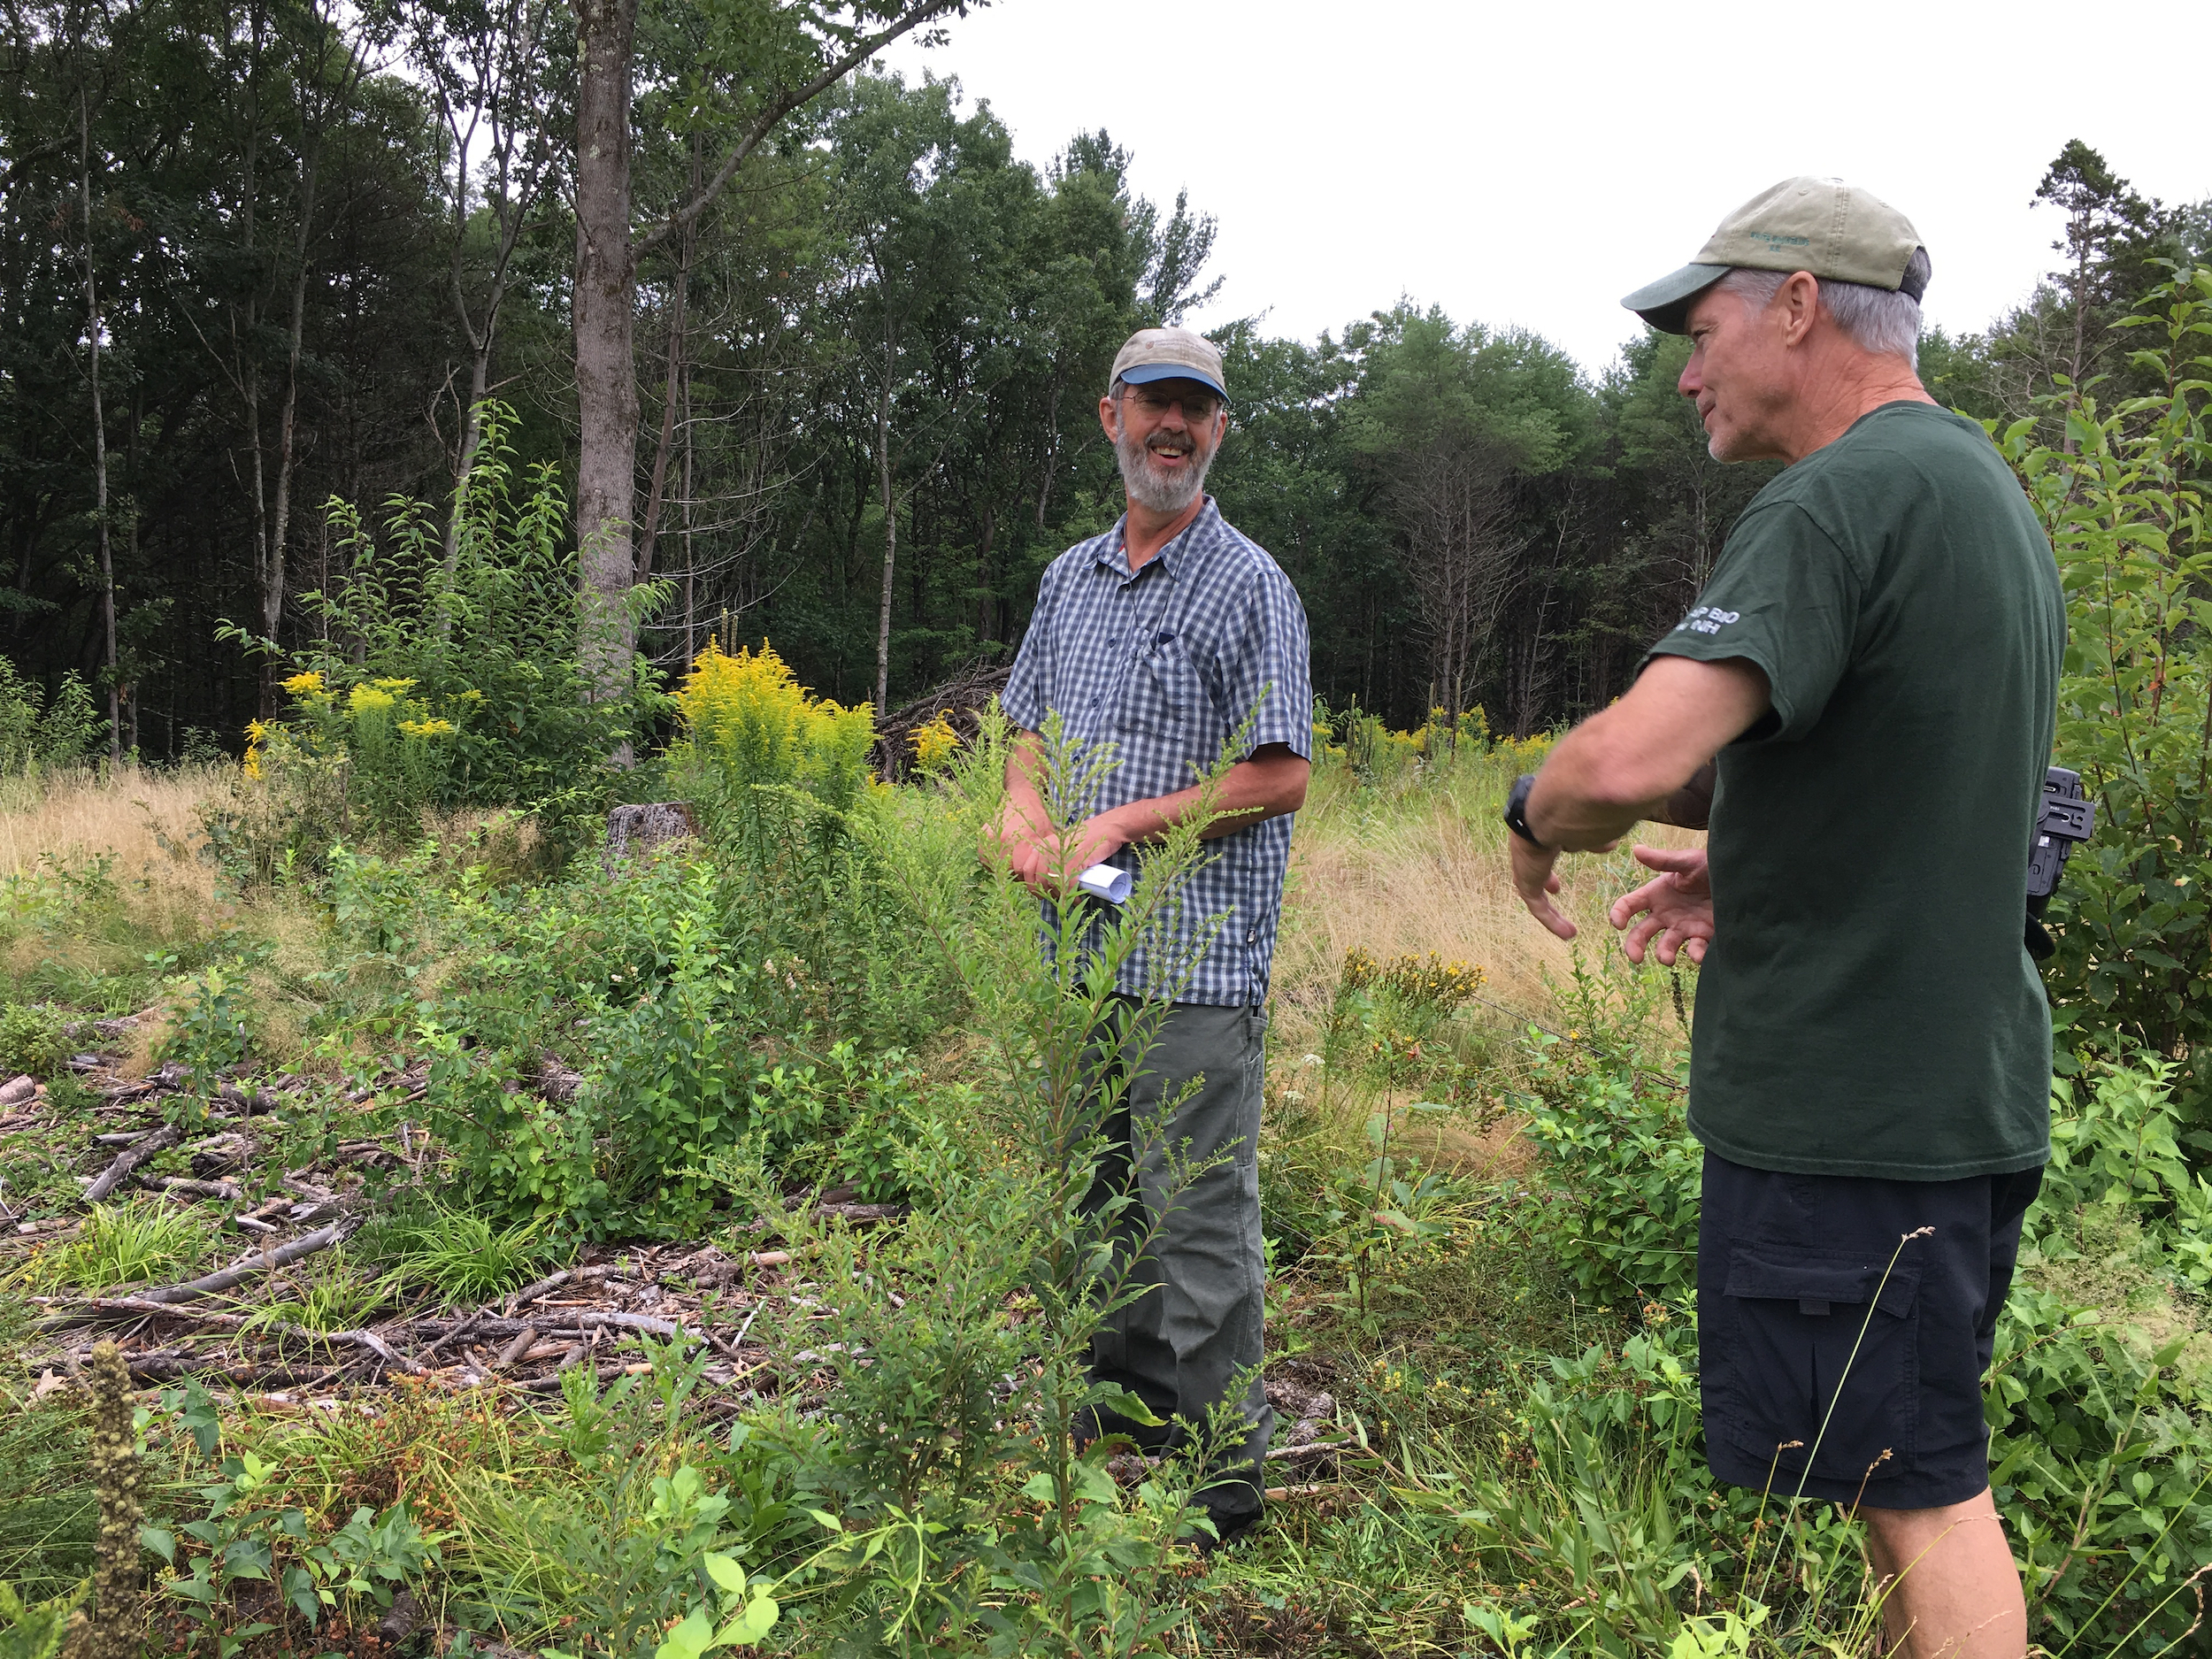 UNH County Extension Forester Tim Fleury (center) talks with Conservation Commission Vice Chair Drew Groves about maintaining a recent timber cut to reopen an old field for wildlife habitat. Fleury conducted a monitoring visit recently at the Kimball Pond area for the U.S. Forest Service.